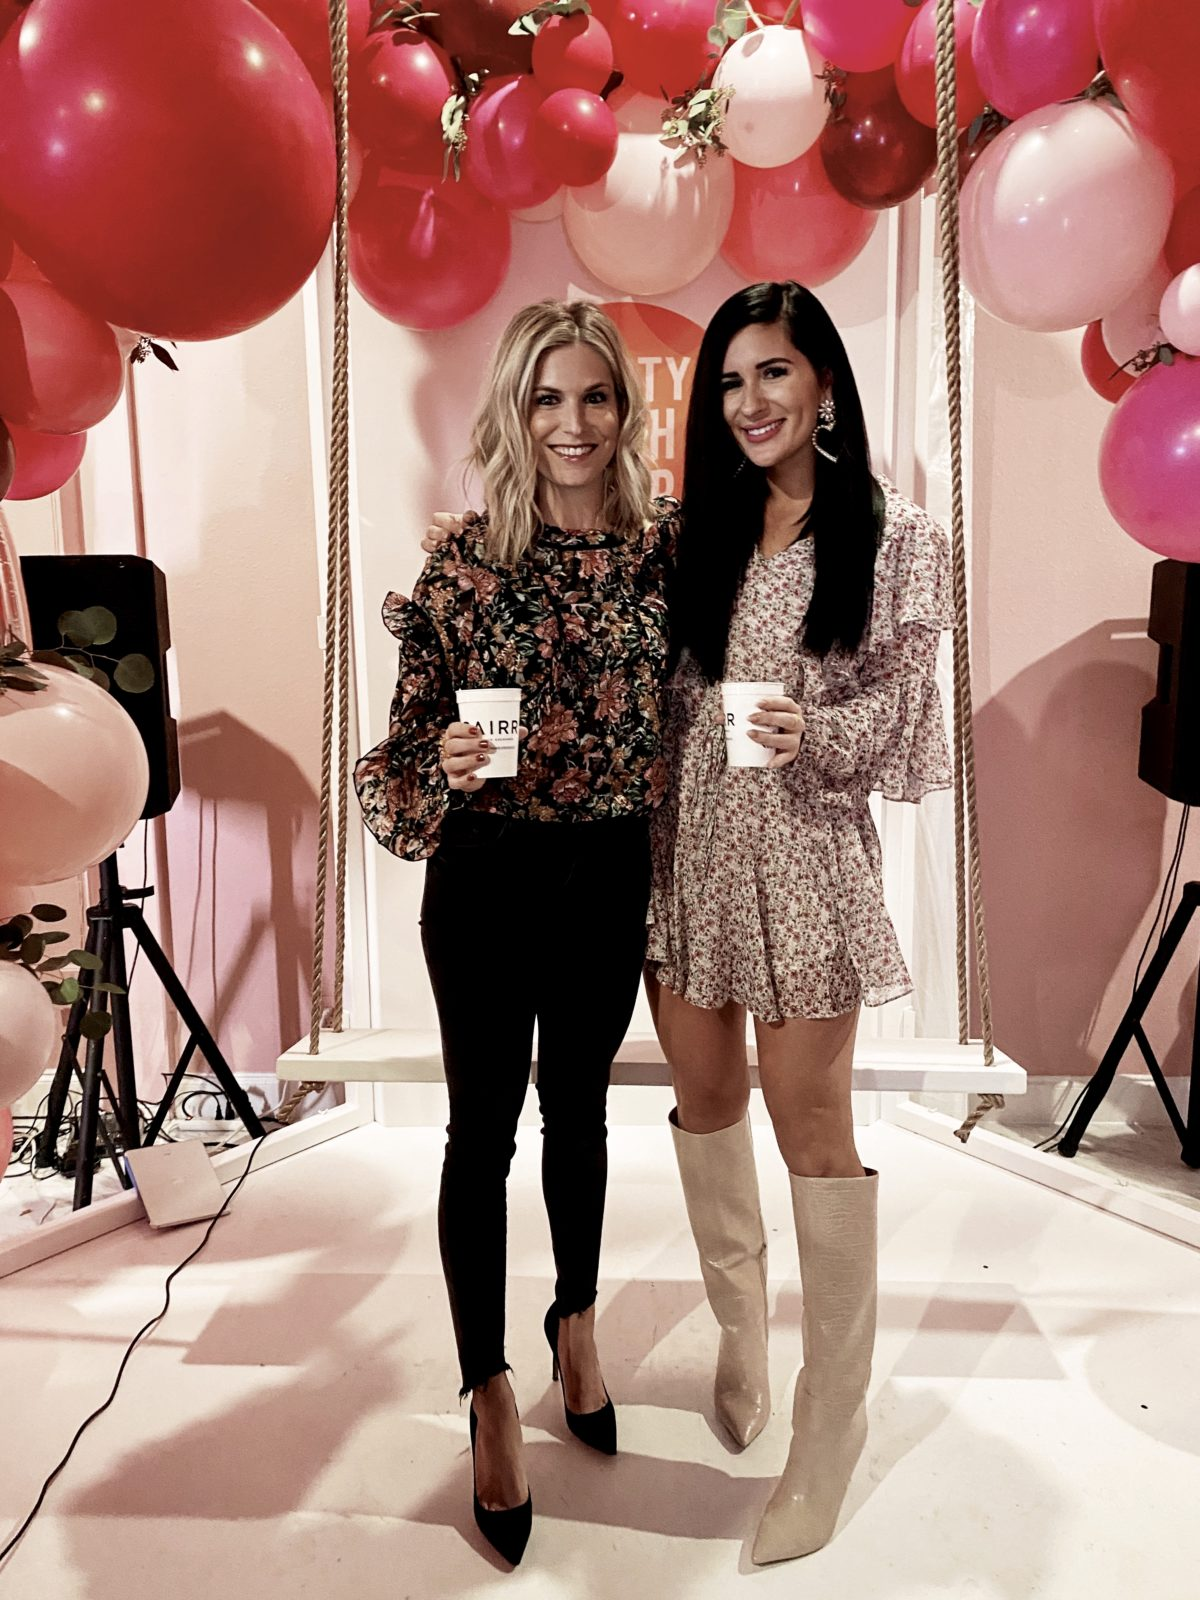 dallas bloggers lynlee poston and brooke burnett, single girls